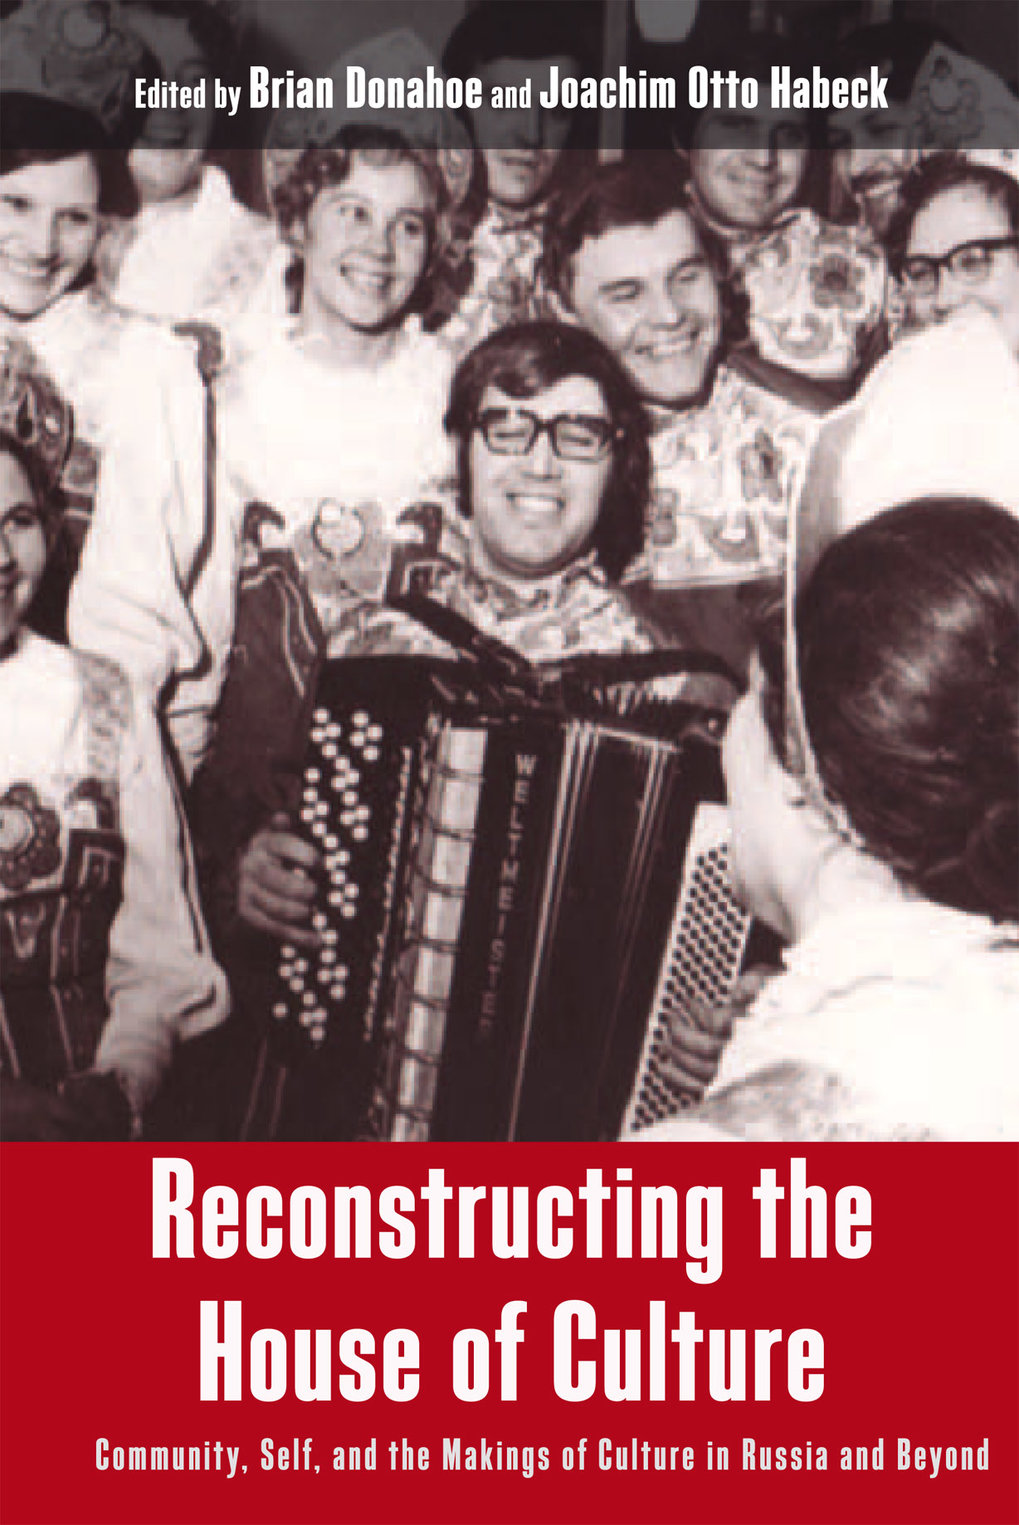 Reconstructing the House of Culture: community, self, and the makings of culture in Russia and beyond